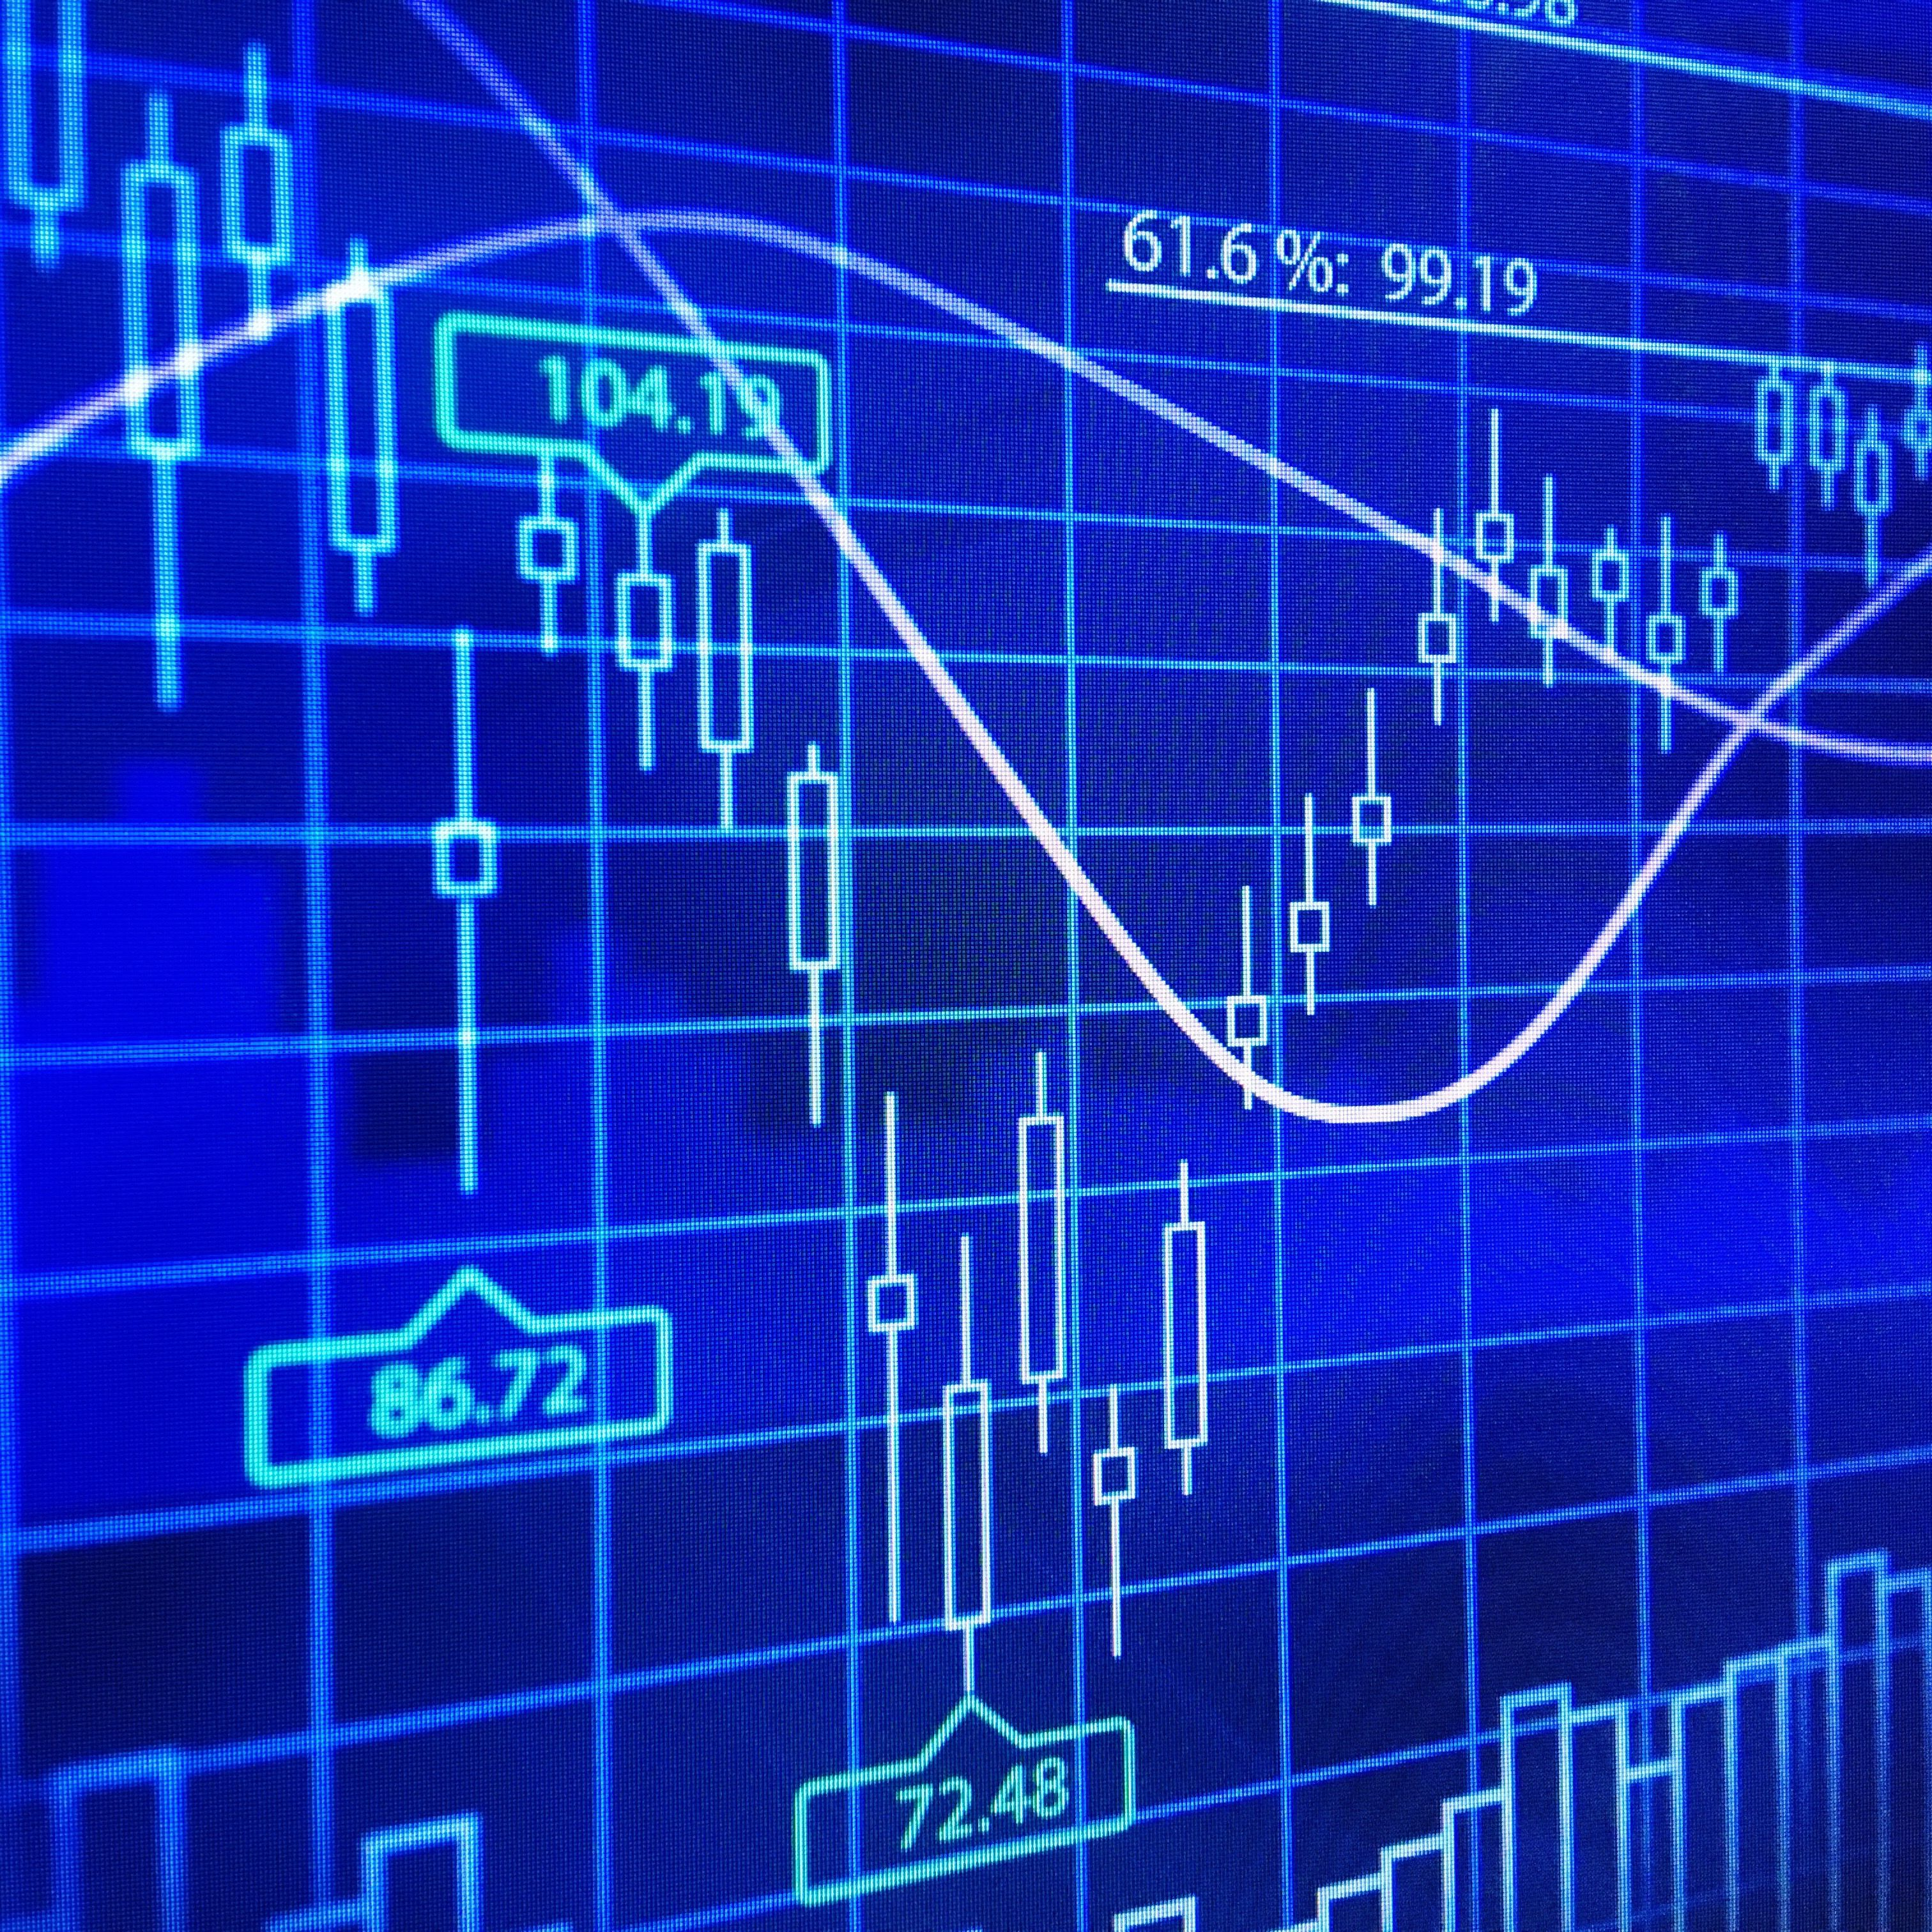 Best Stock Analysis Software and Strategy Tools